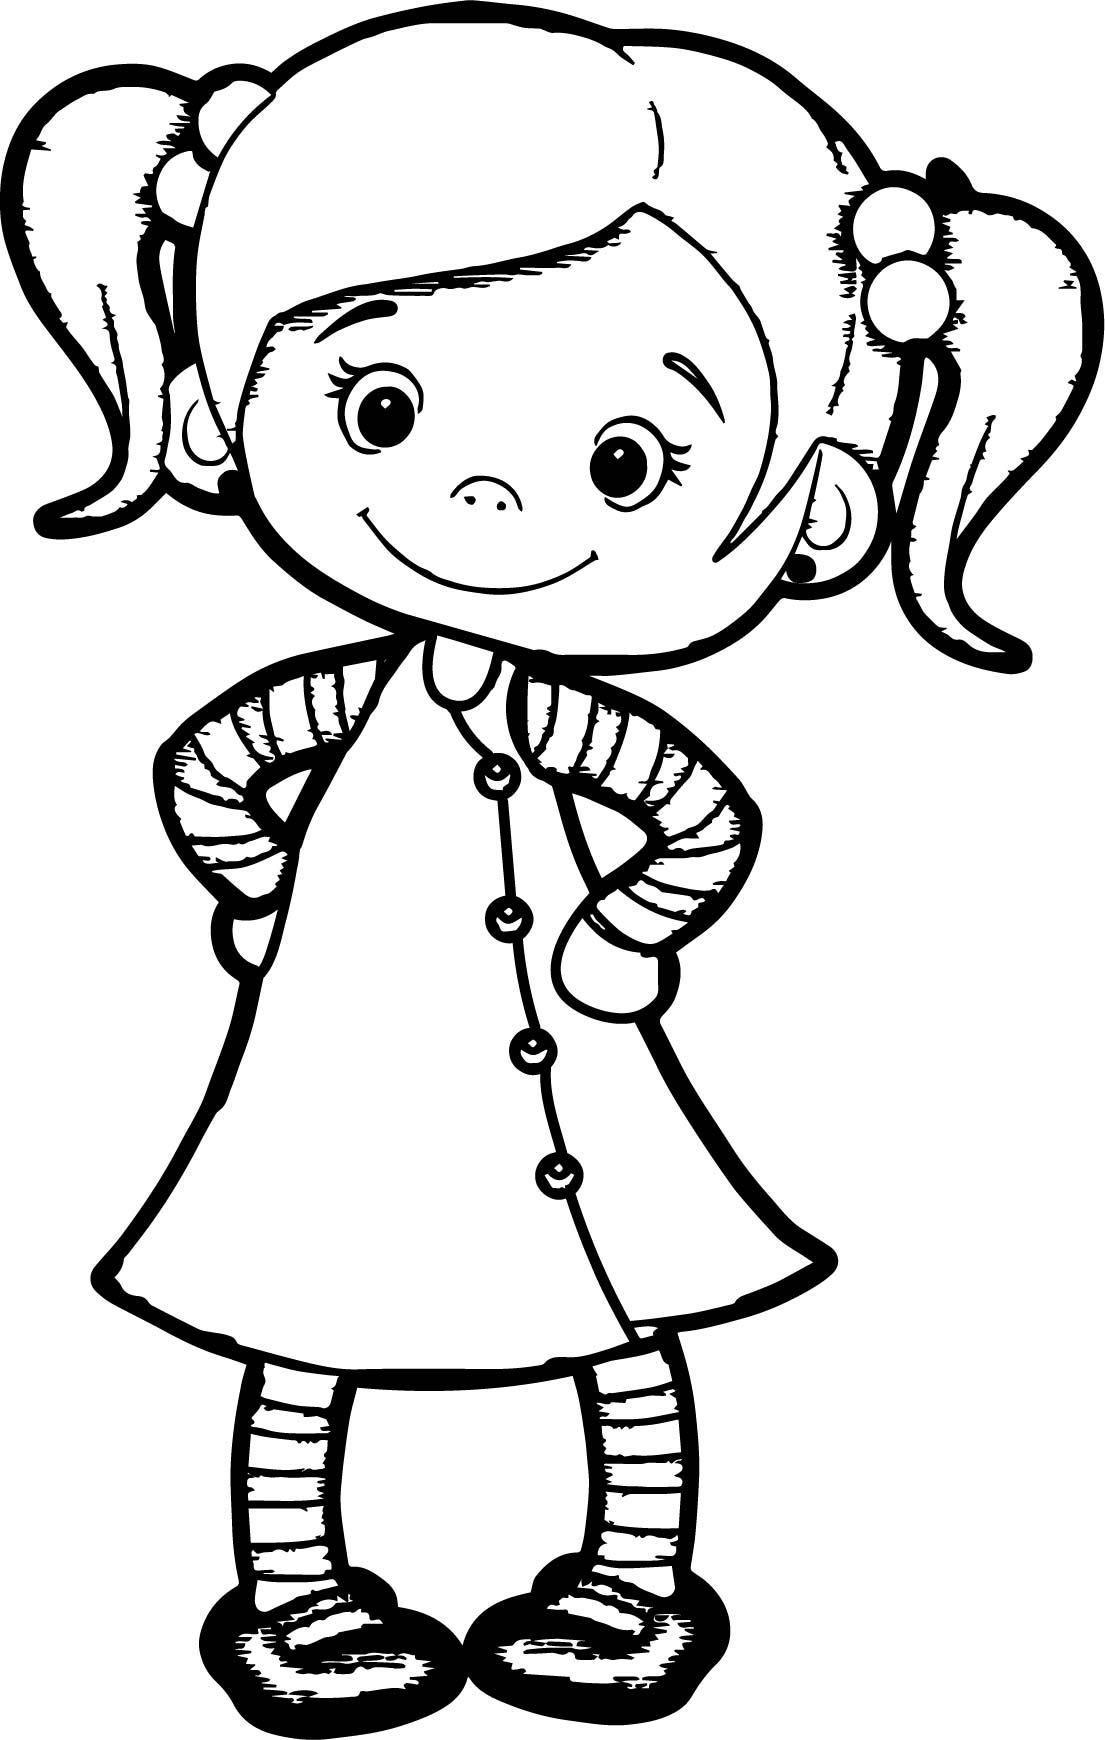 coloring pages of a girl pin στον πίνακα Σχέδια a pages coloring girl of